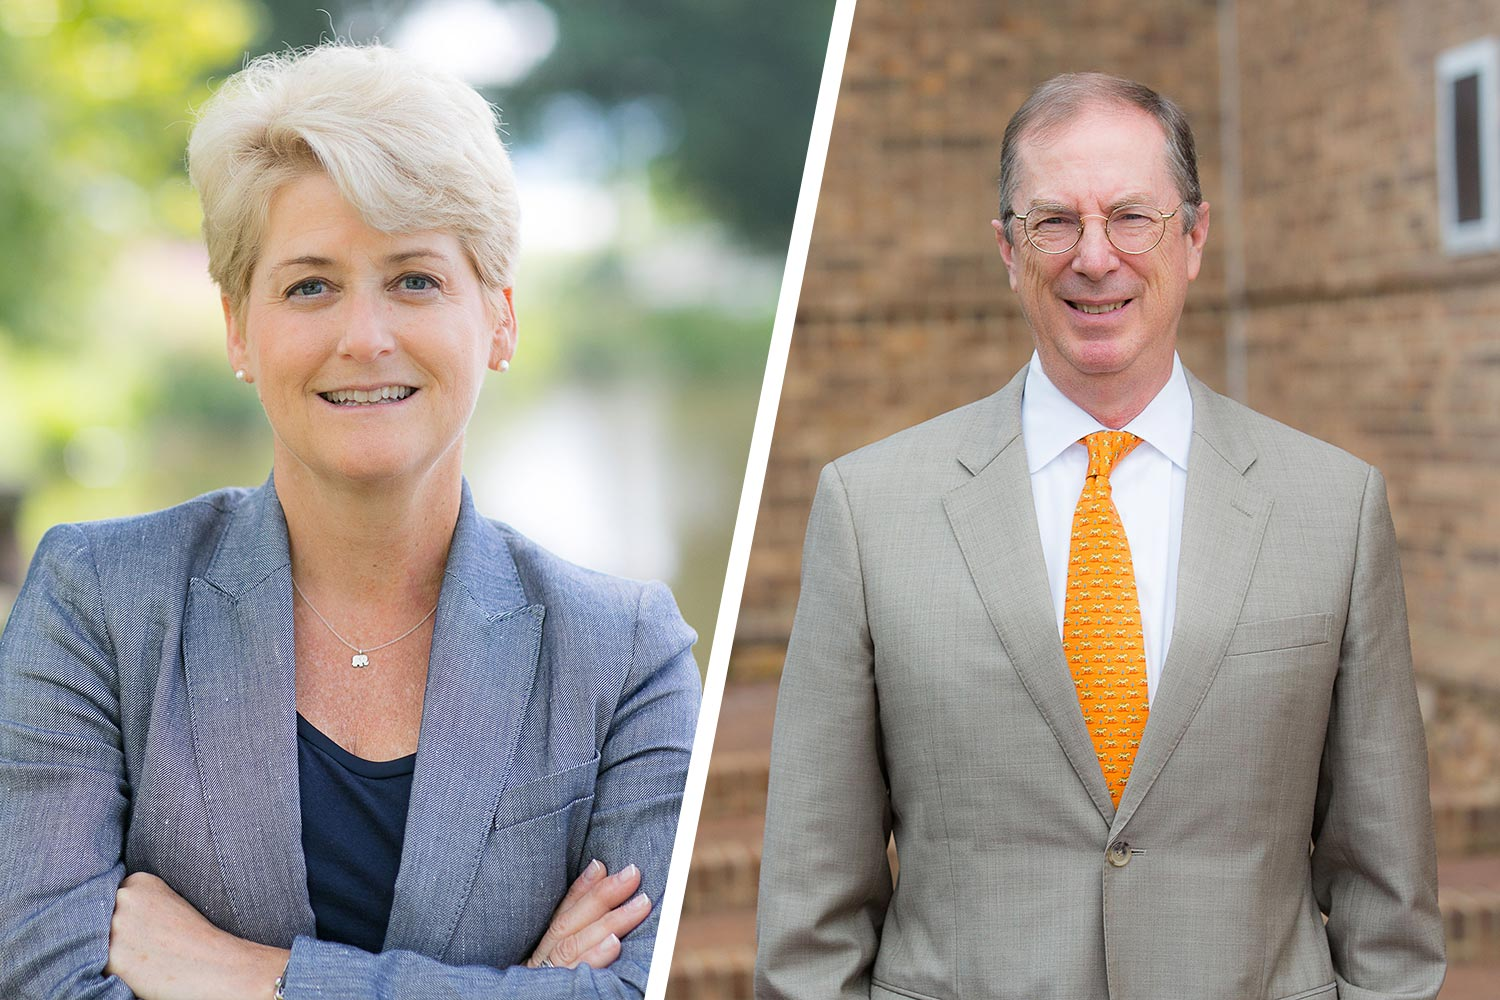 Deborah van Eersel is chief administrative officer and director of marketing at the UVA Foundation. Tim Rose is the chief executive officer of the UVA Foundation, which owns and operates the park.